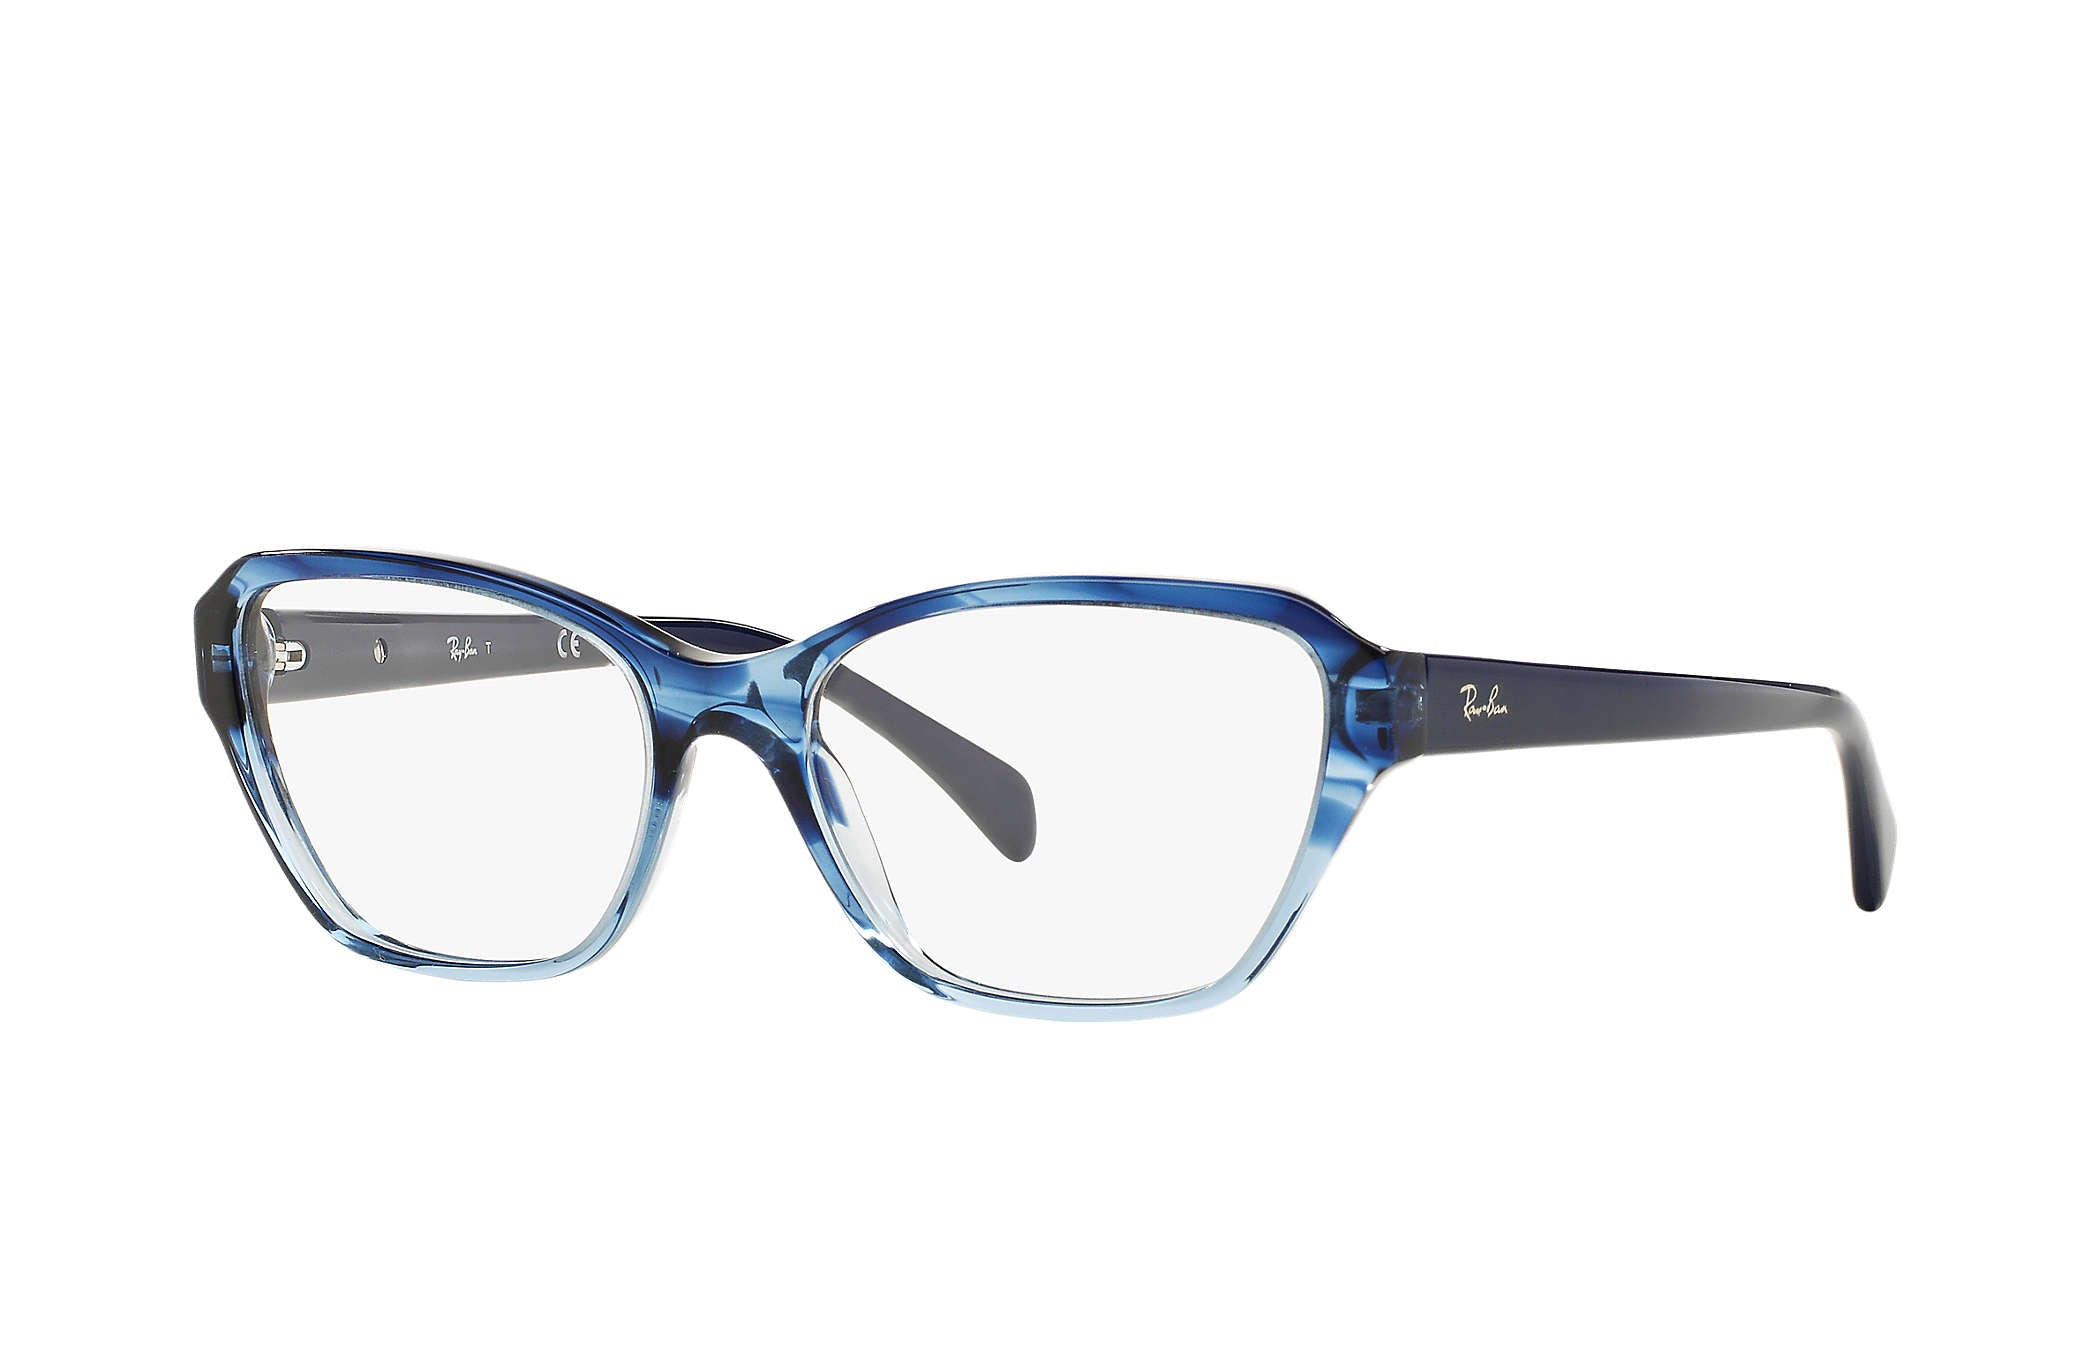 Ray Ban Eyeglasses RB5341 5572 RX-ABLE